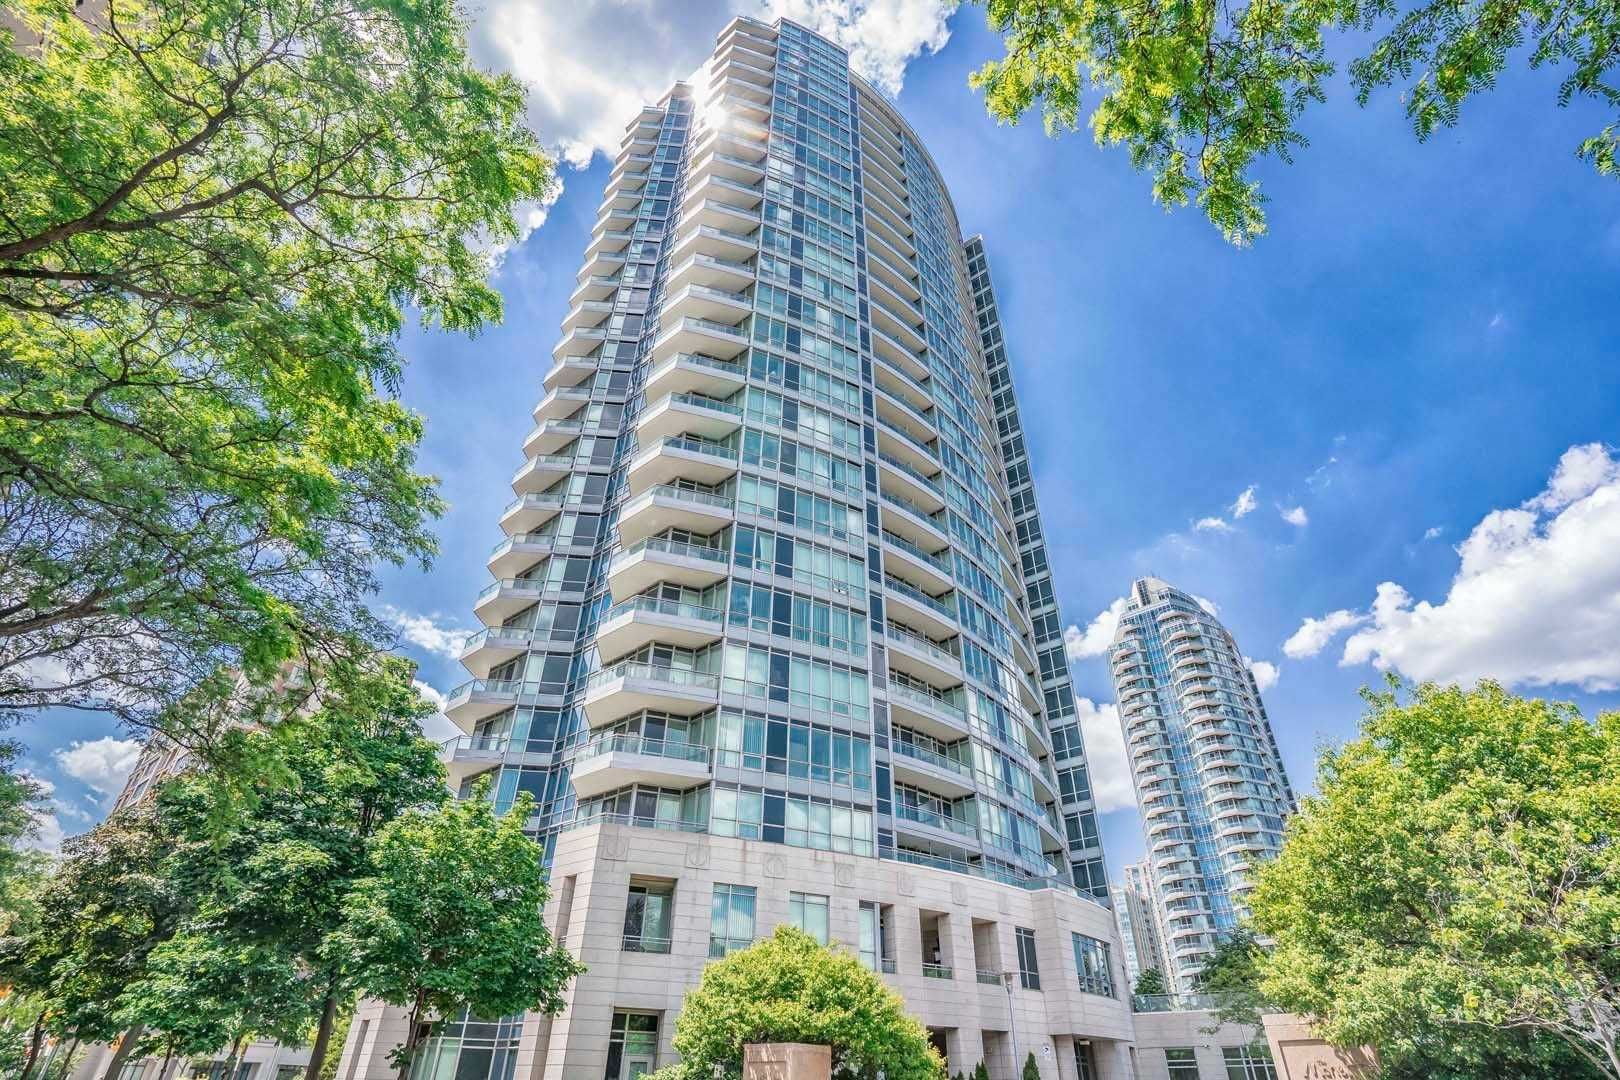 60 Byng Ave W, unit 1312 for sale in Toronto - image #1